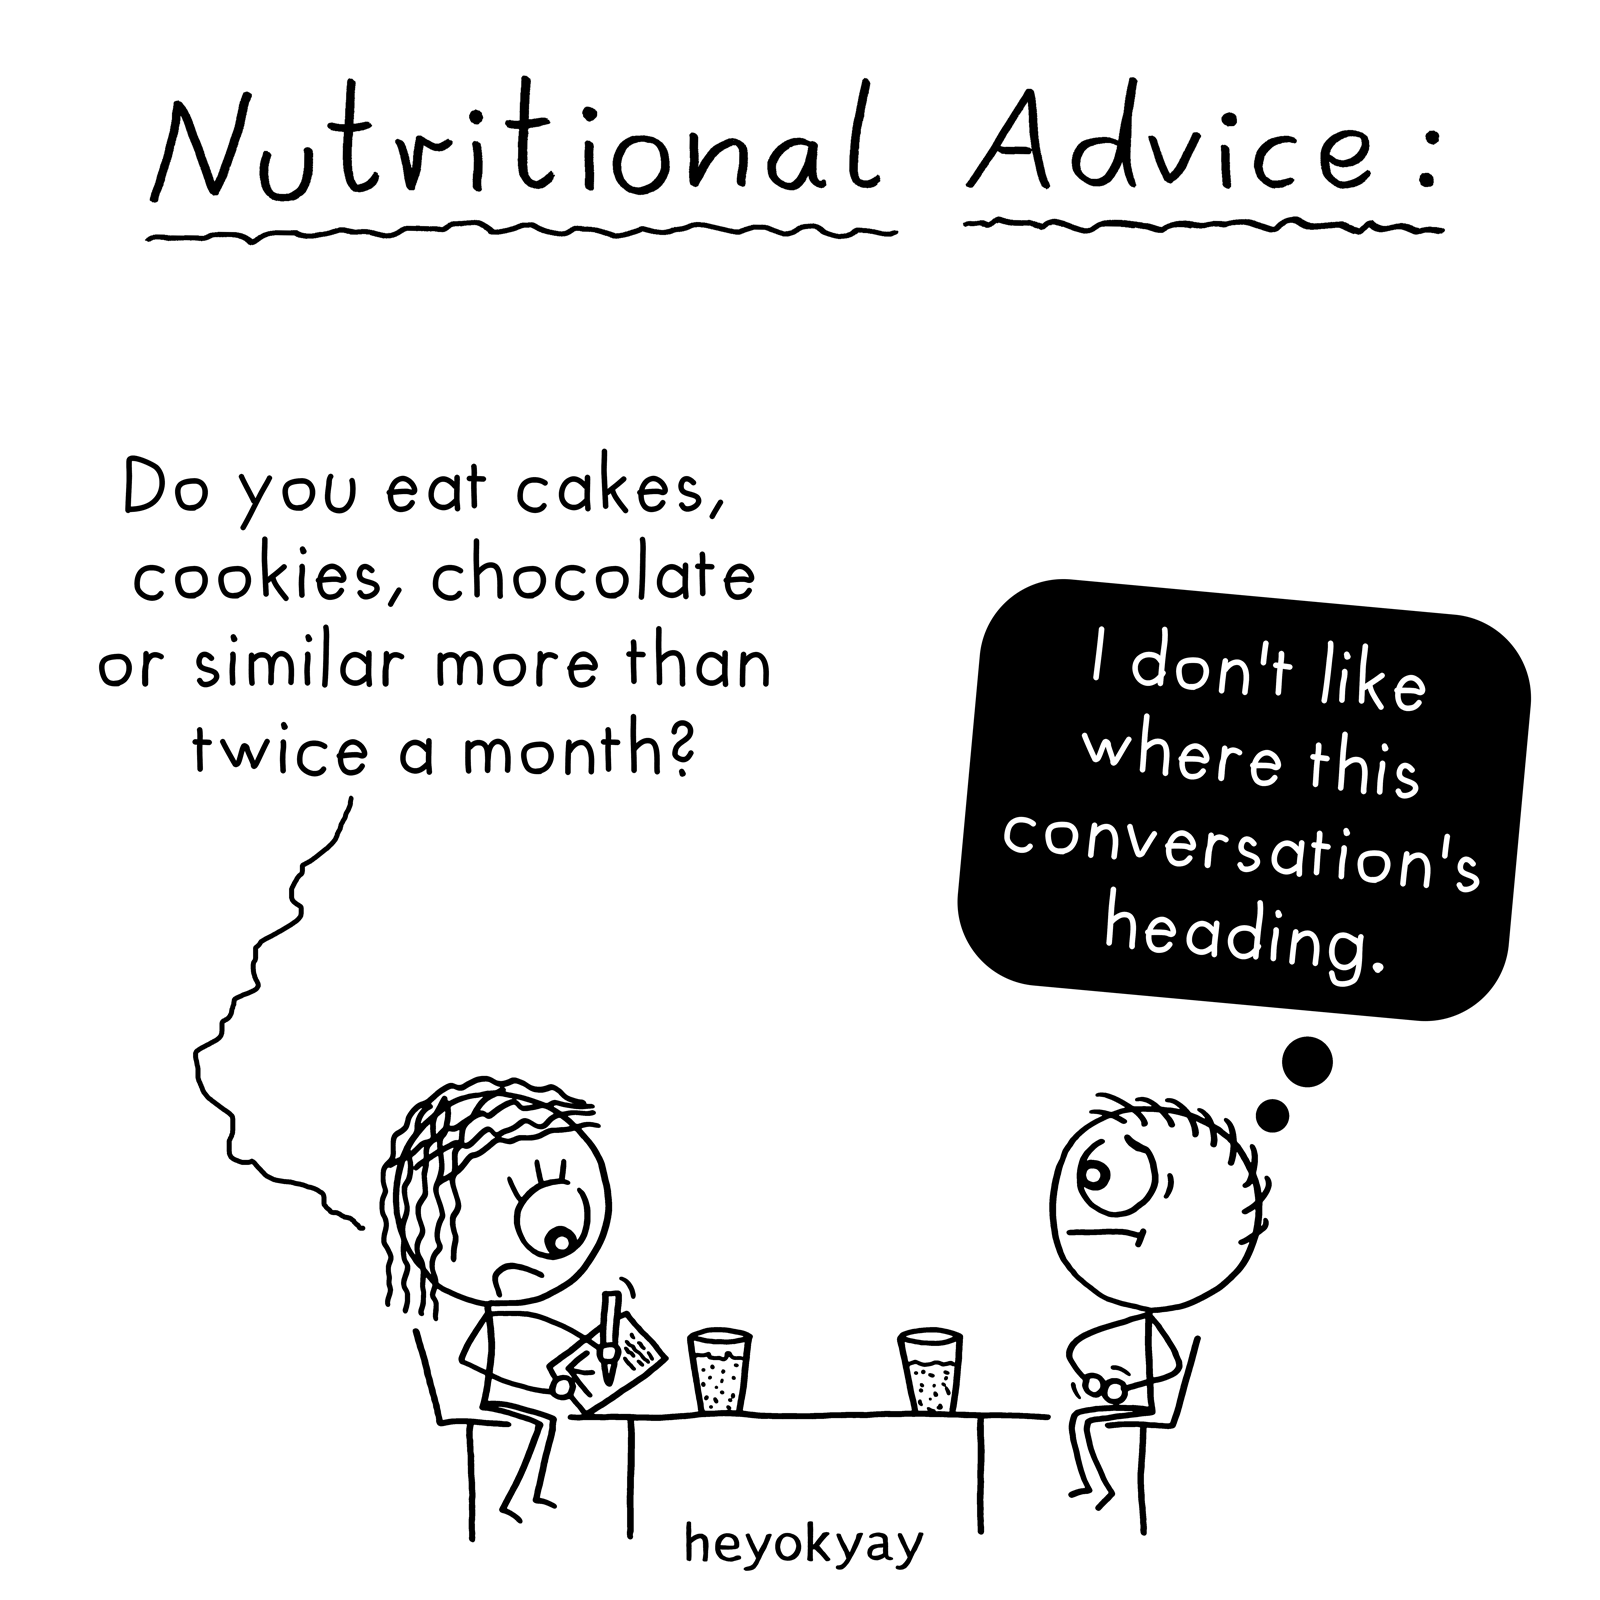 Nutritional Advice heyokyay comic